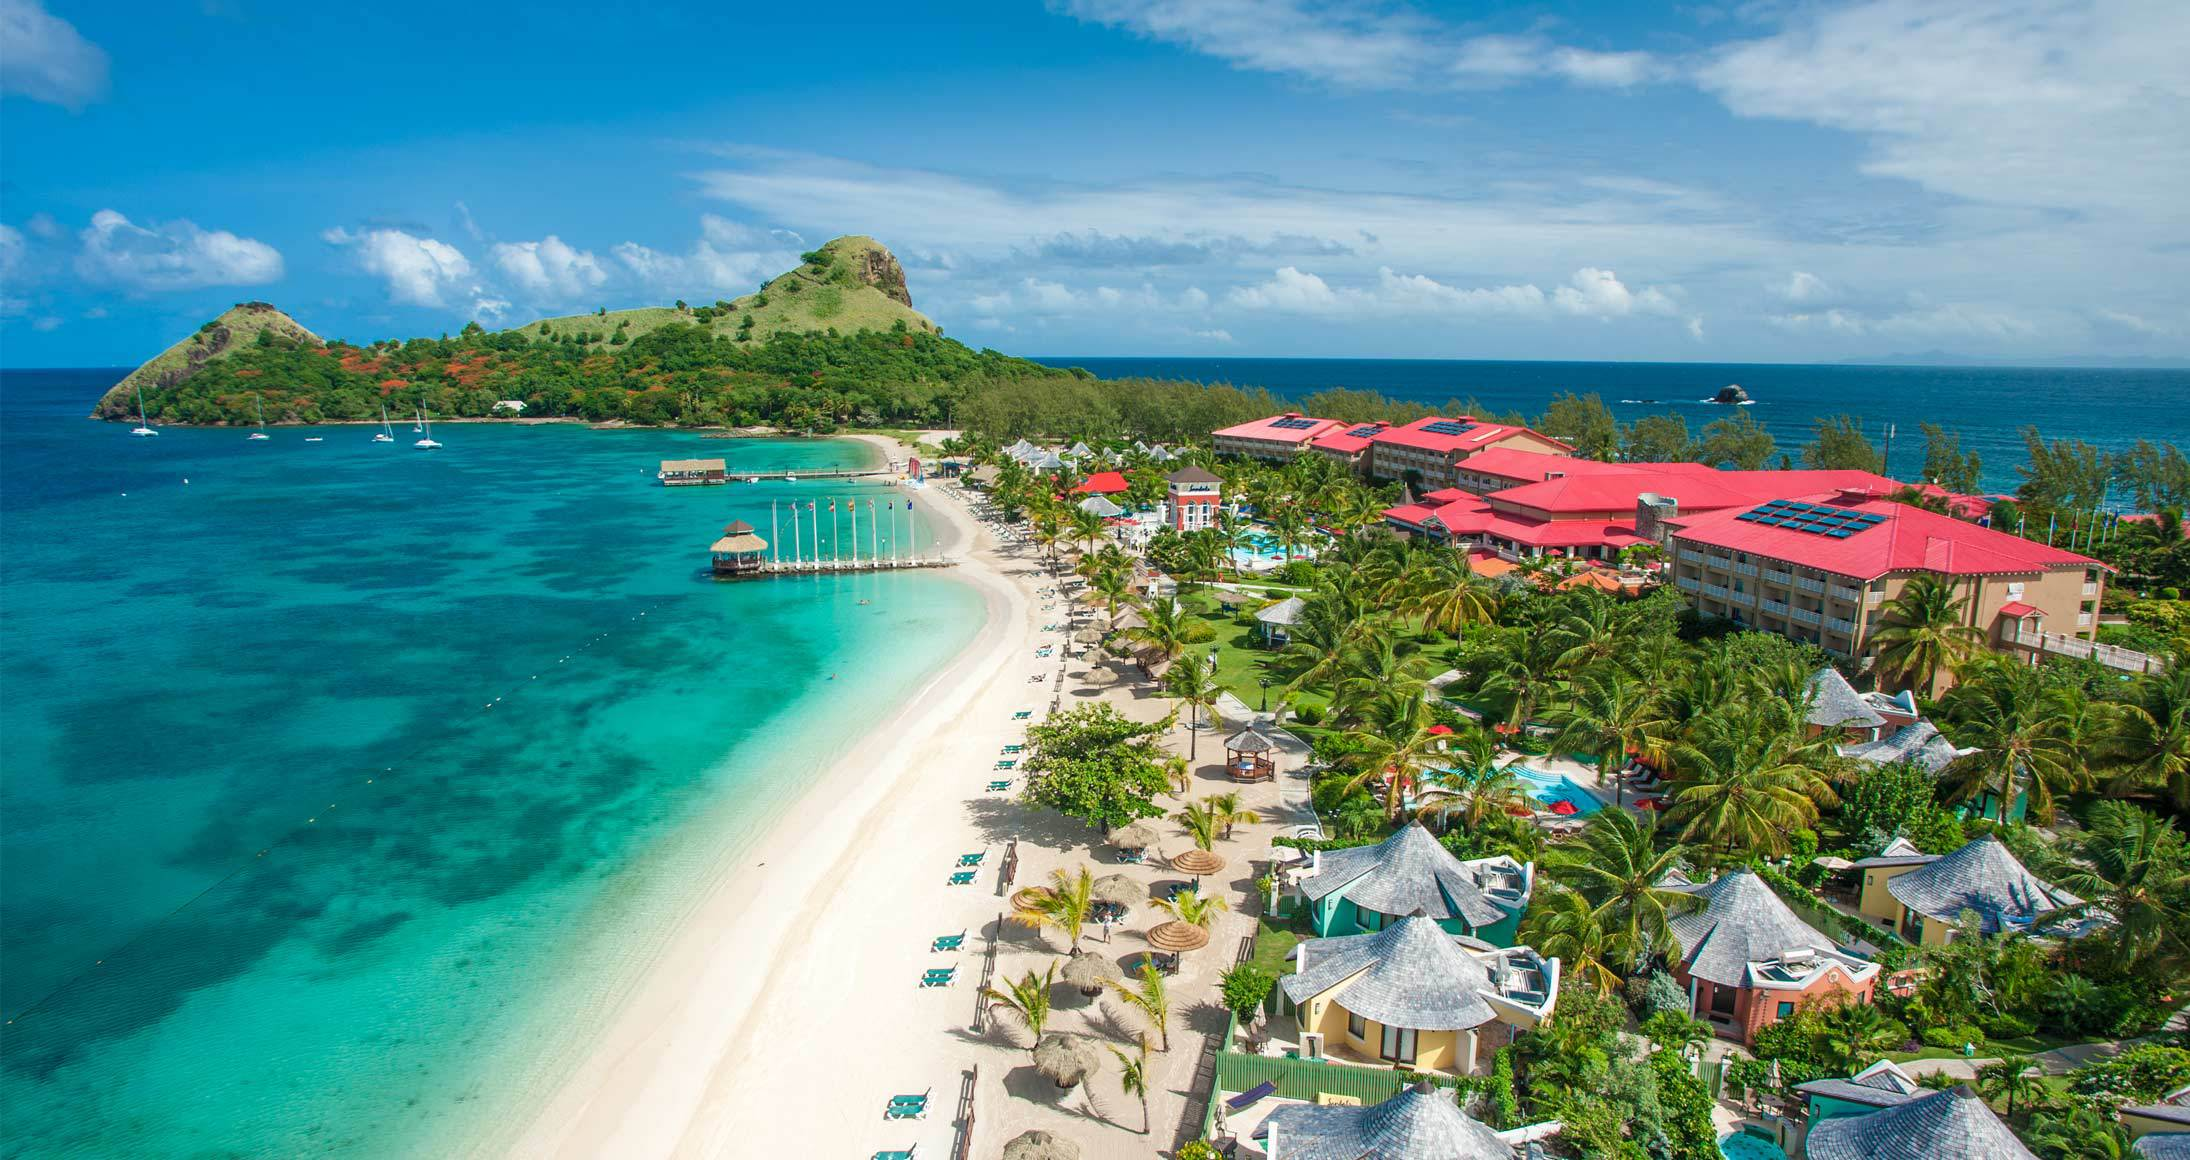 fb94d4ff27a304 Sandals Grande St. Lucian - All-Inclusive Luxury Resort in St. Lucia